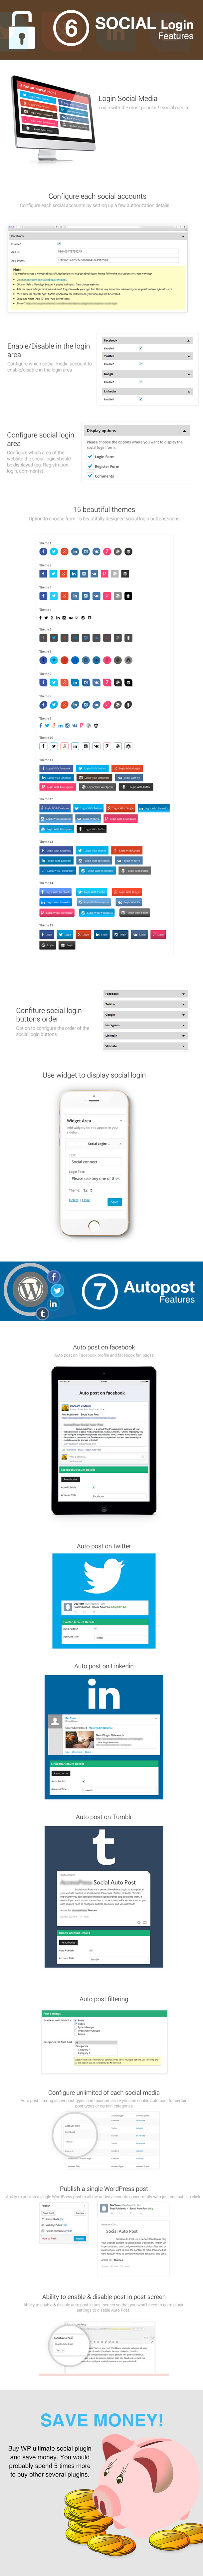 WP Ultimate Social - All in One Social Features' Collection WordPress Plugin - 3